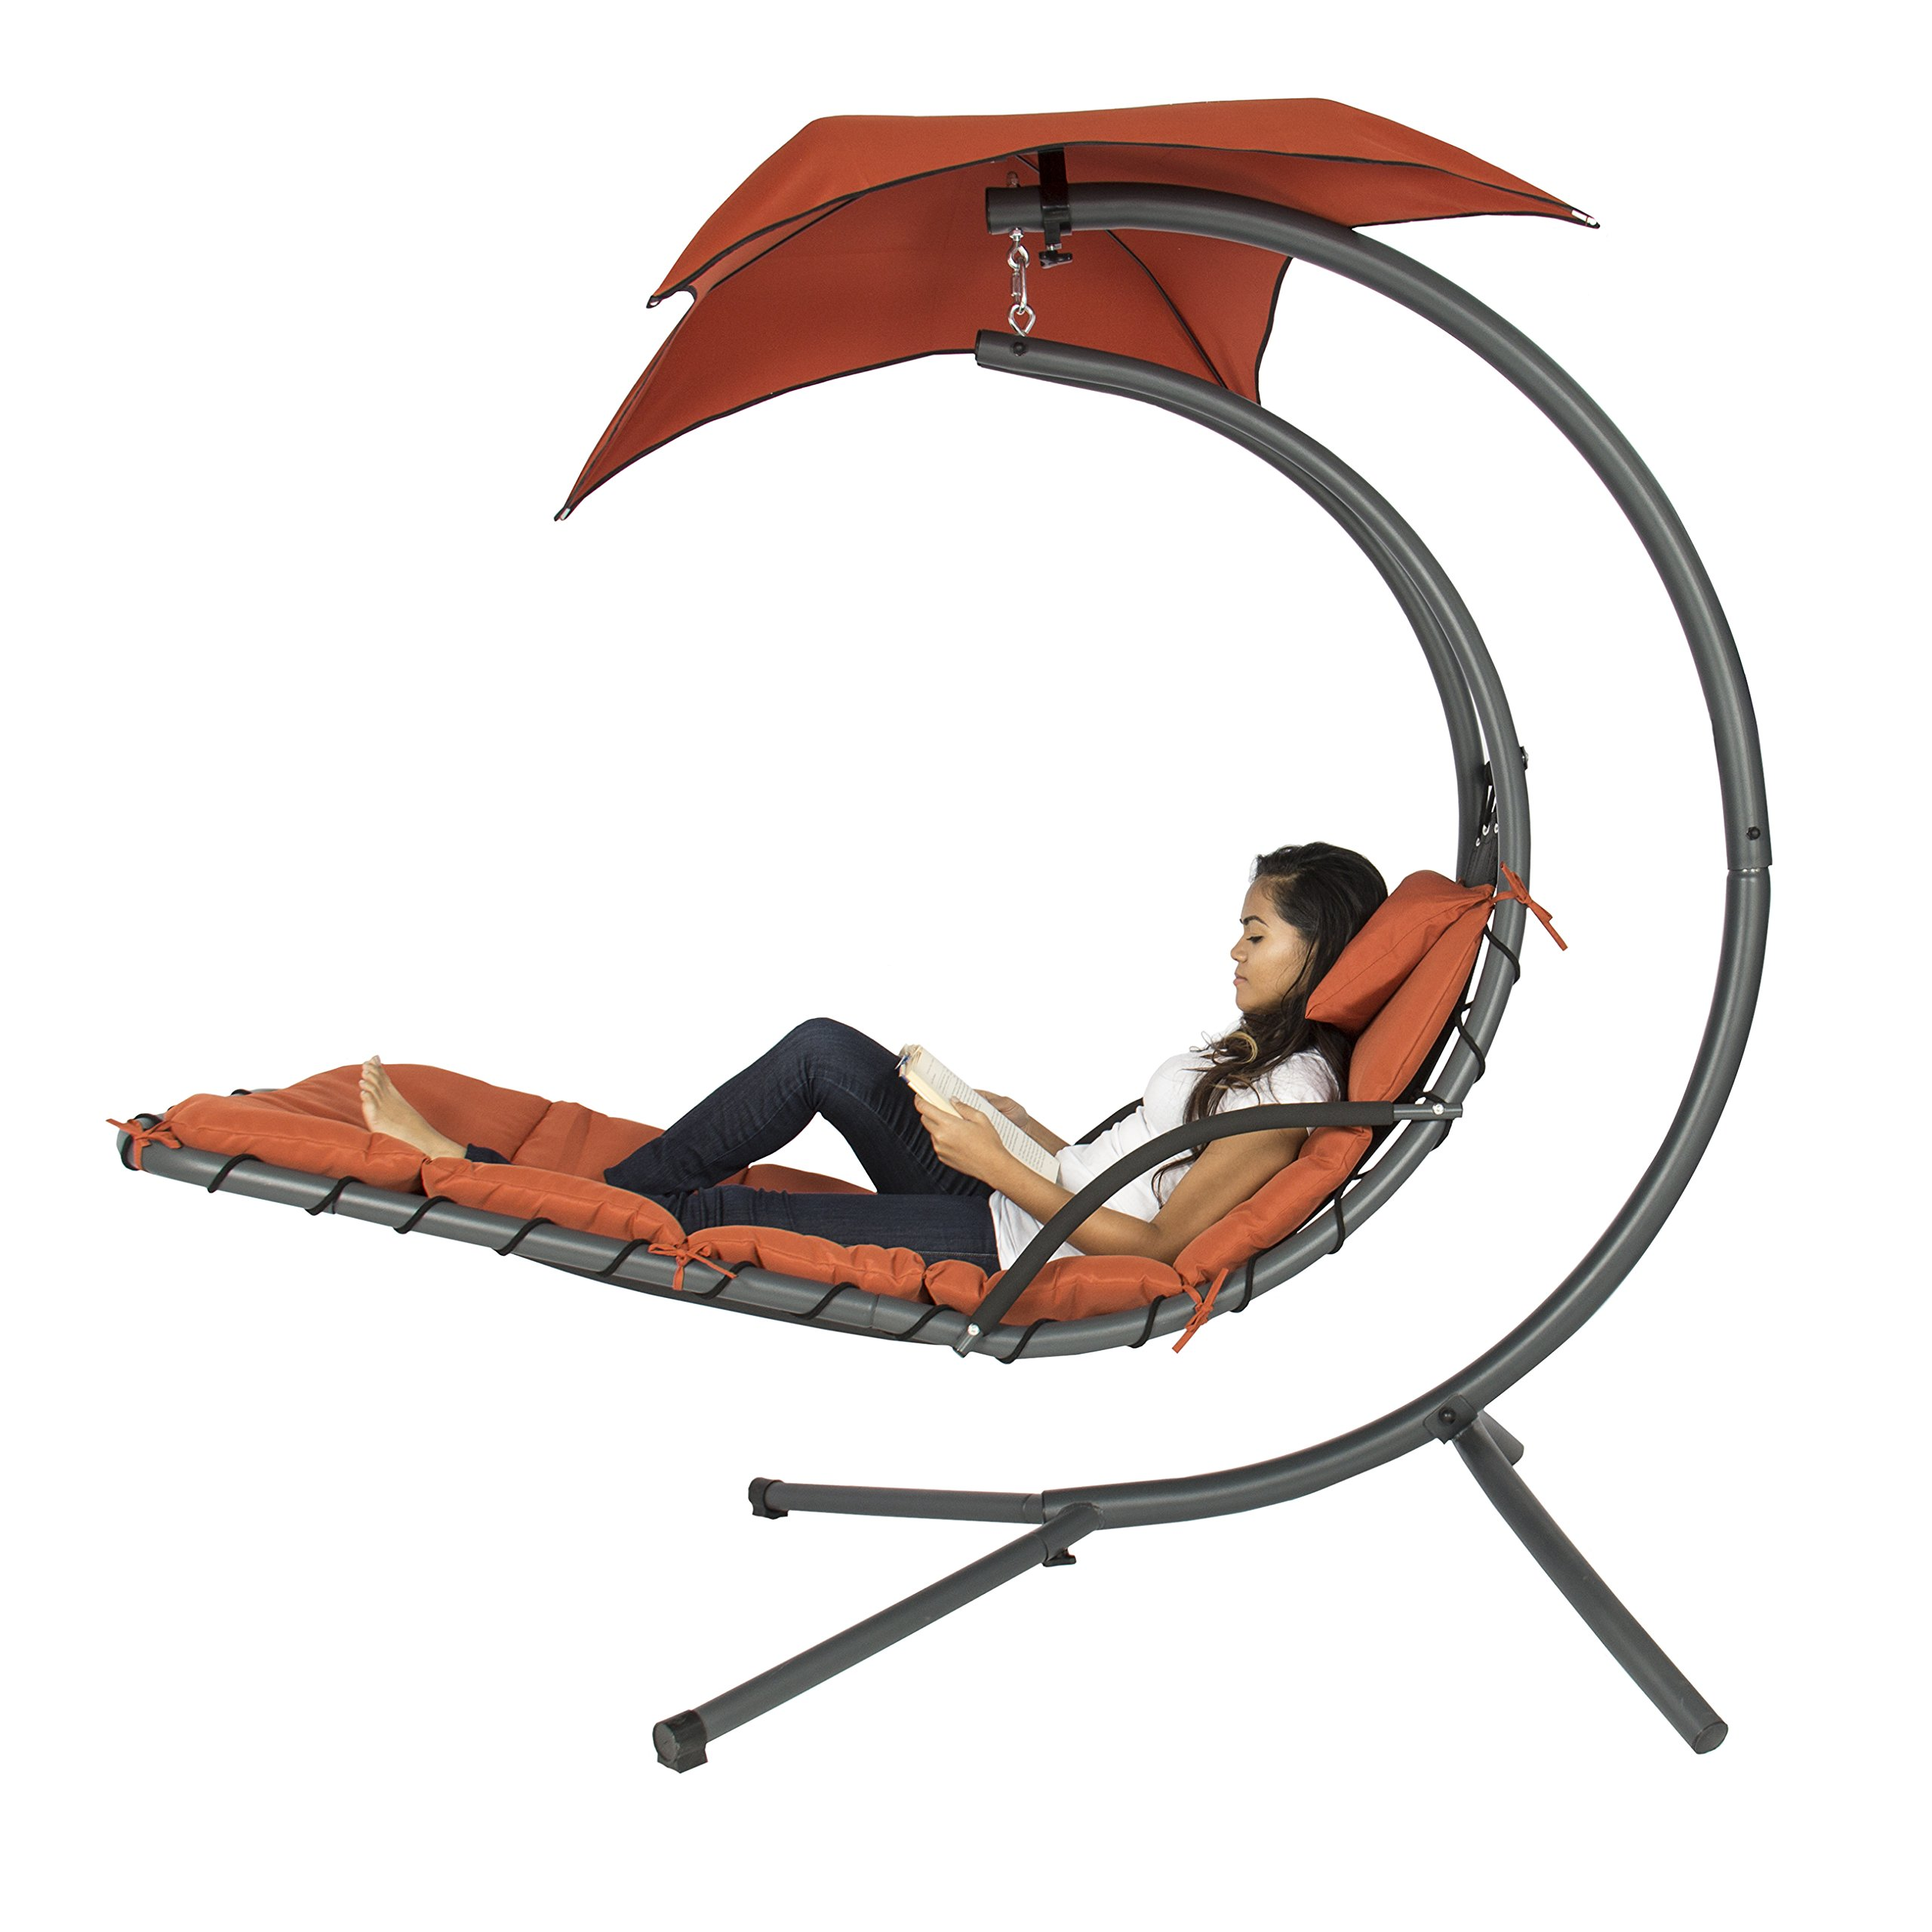 LBest Choice Products presents you this brand new red dream hammock chair. It is made of heavy duty powder coated metal frame and all weather-resist fabric with a pillow, umbrella and cushion, supporting up to 265lbs. The modern design fits with any backyard decor. It comes with build-in 46